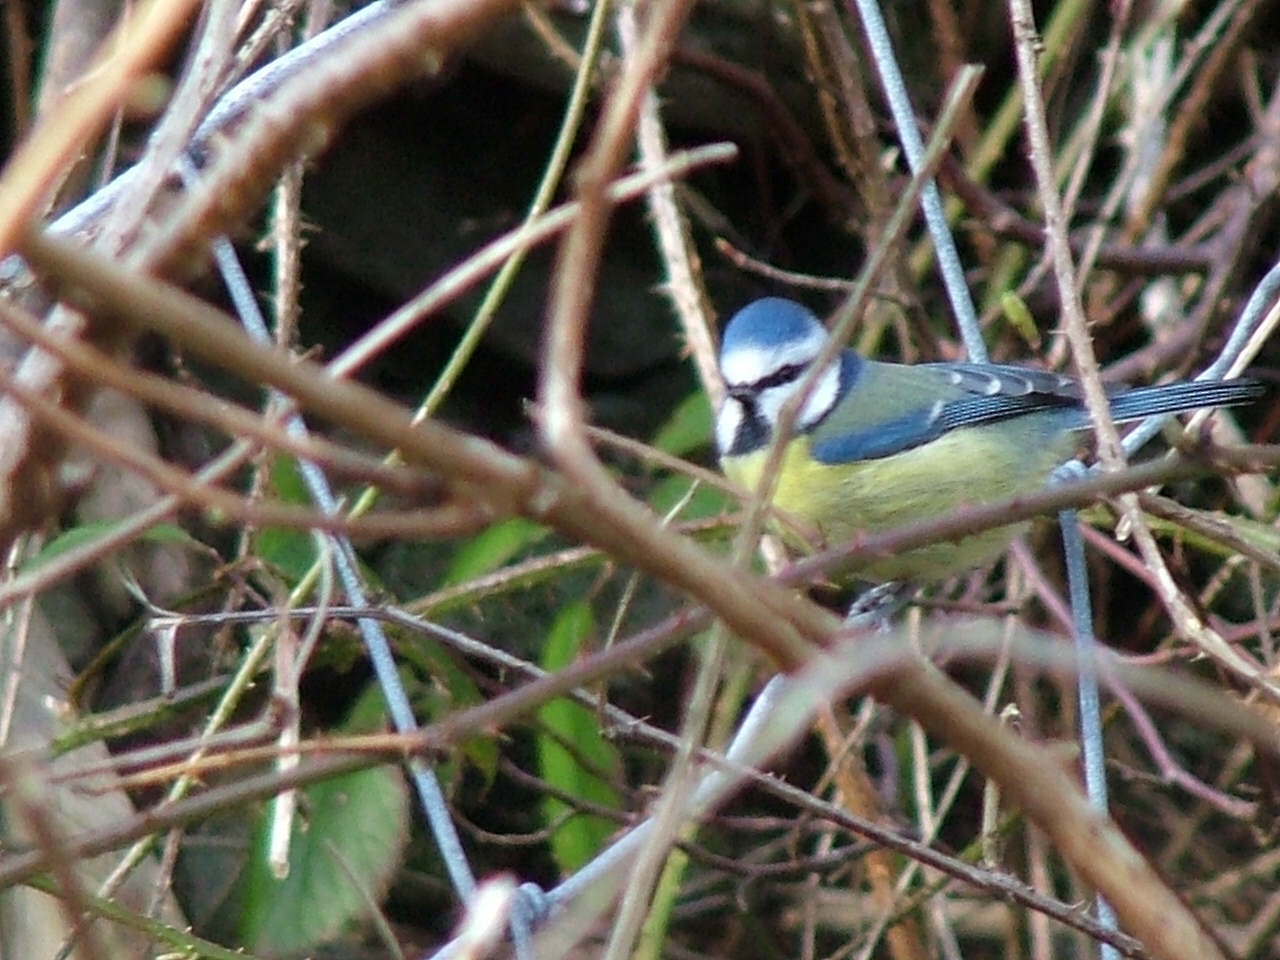 Blue tit near the Woodlands Centre